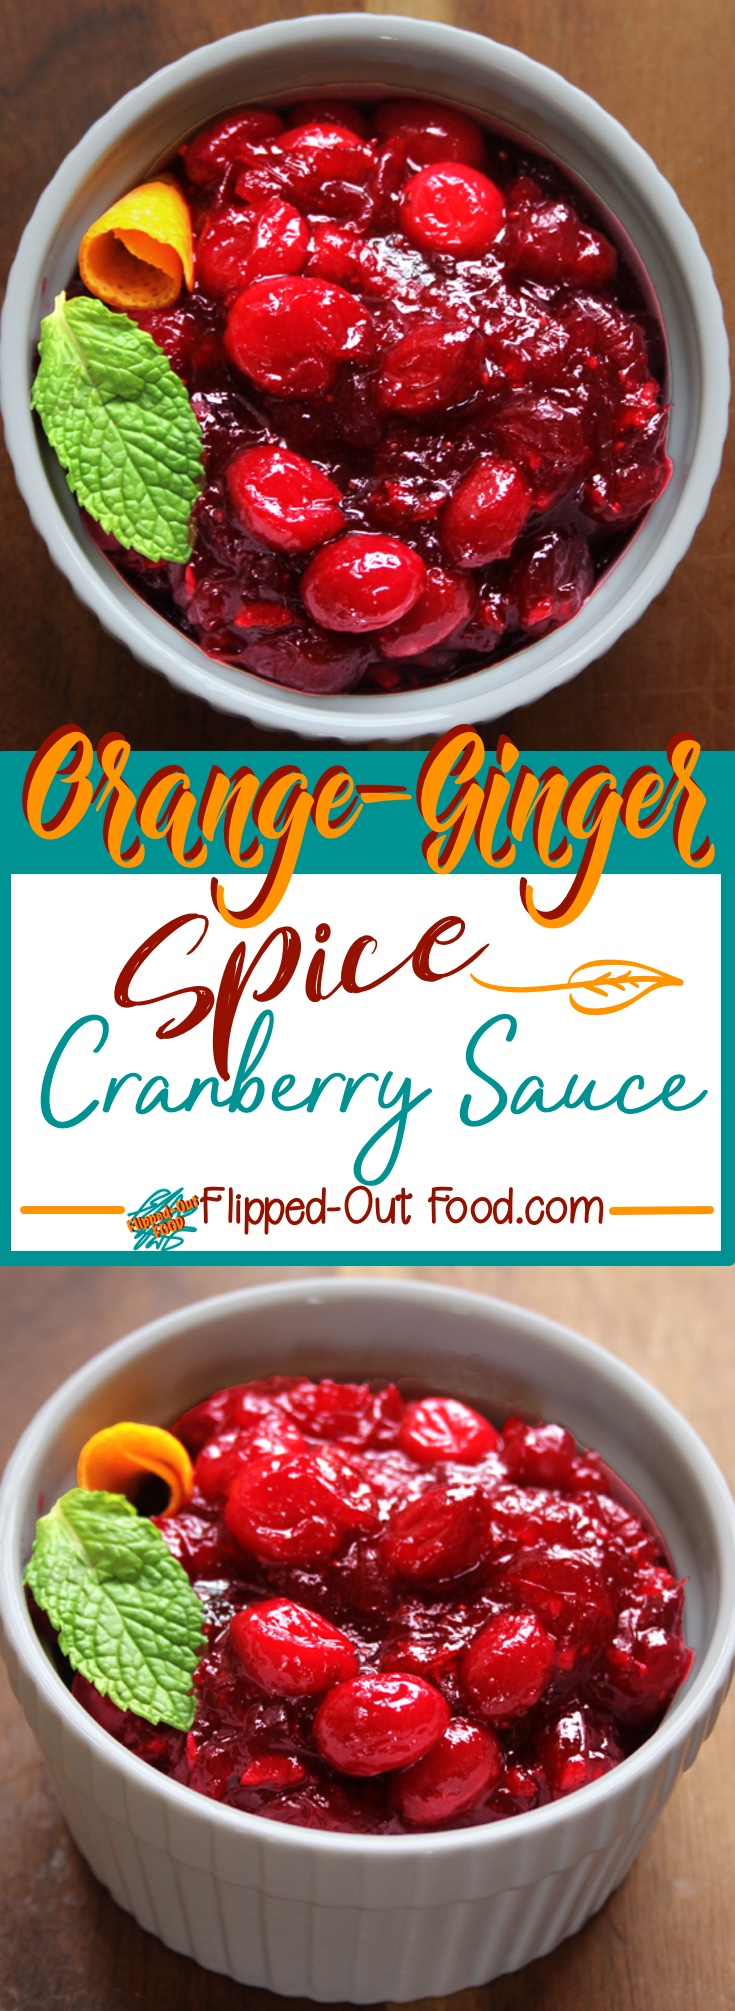 Orange-Ginger-Spice Cranberry Sauce will make you wonder why you ever had store-bought. Make in advance and keep in the fridge until your big event!